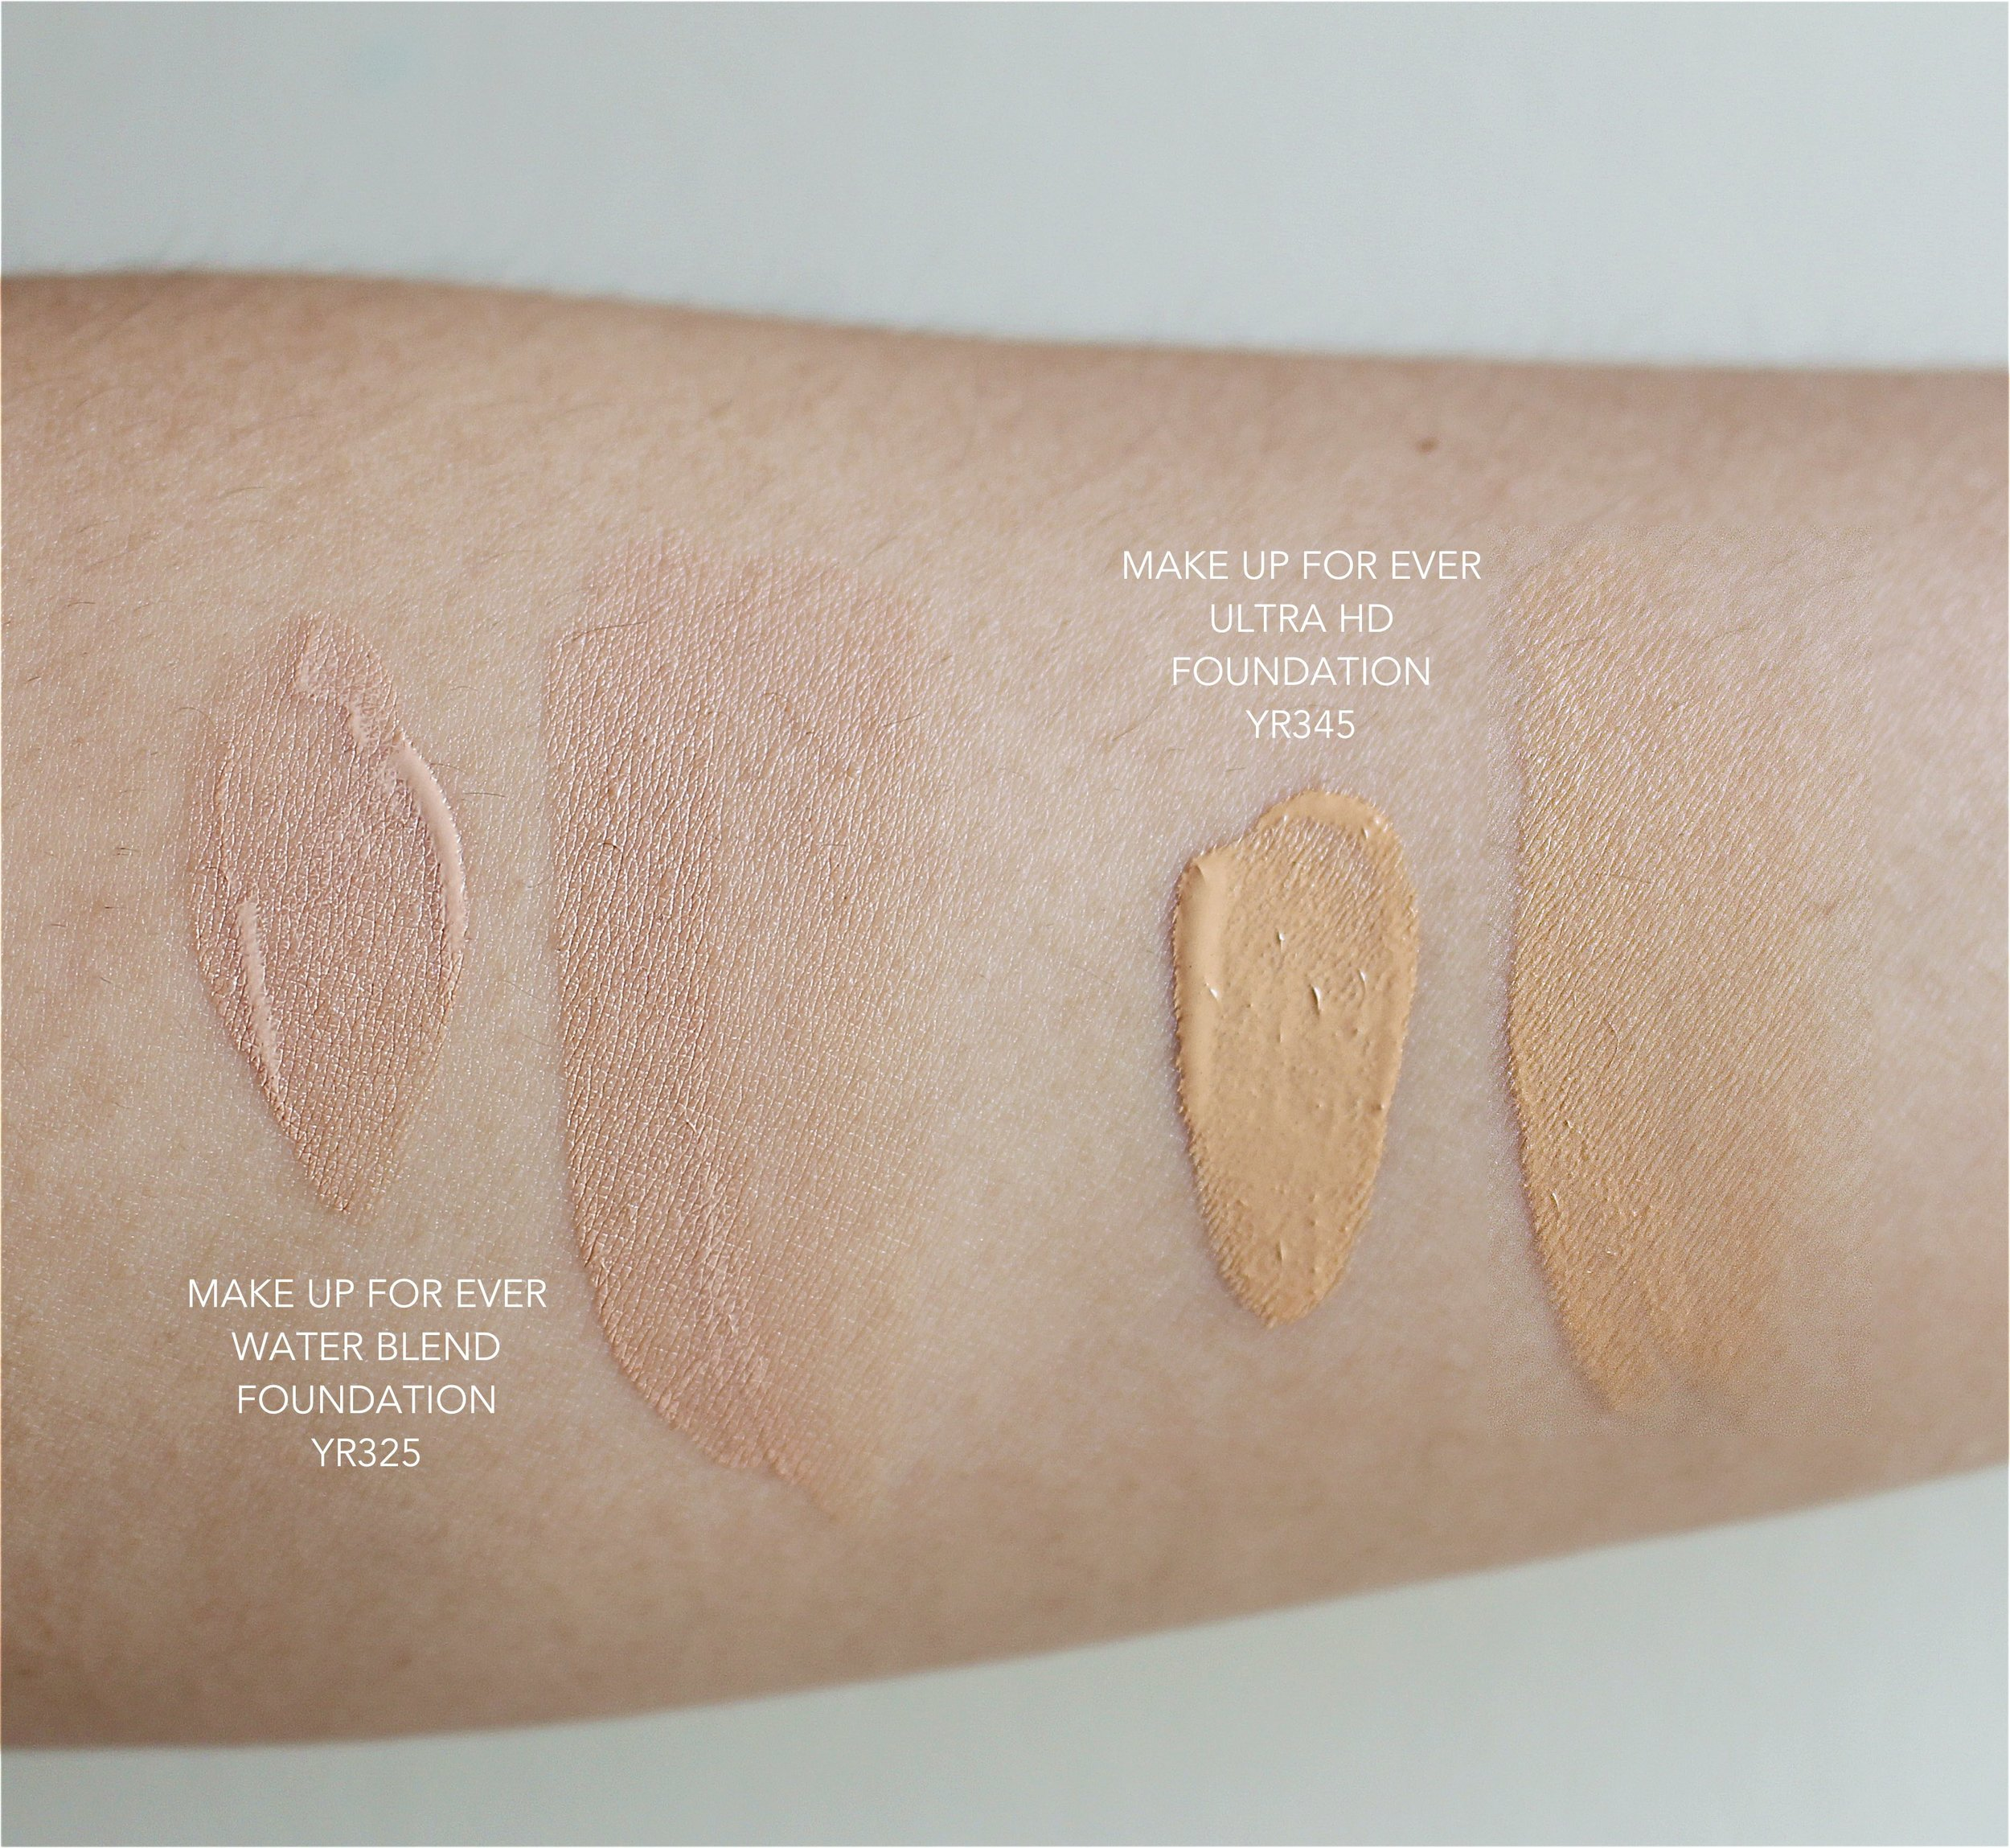 Here's a comparison swatch: the YR325 and YR345 in the two formulas are vastly different. The Water Blend, even though it's in the yellow red (YR) shade range, looks beige-ish. Make sure to swatch the foundation on your whole face to get an accurate shade match - you can't reference your Ultra HD shade here.